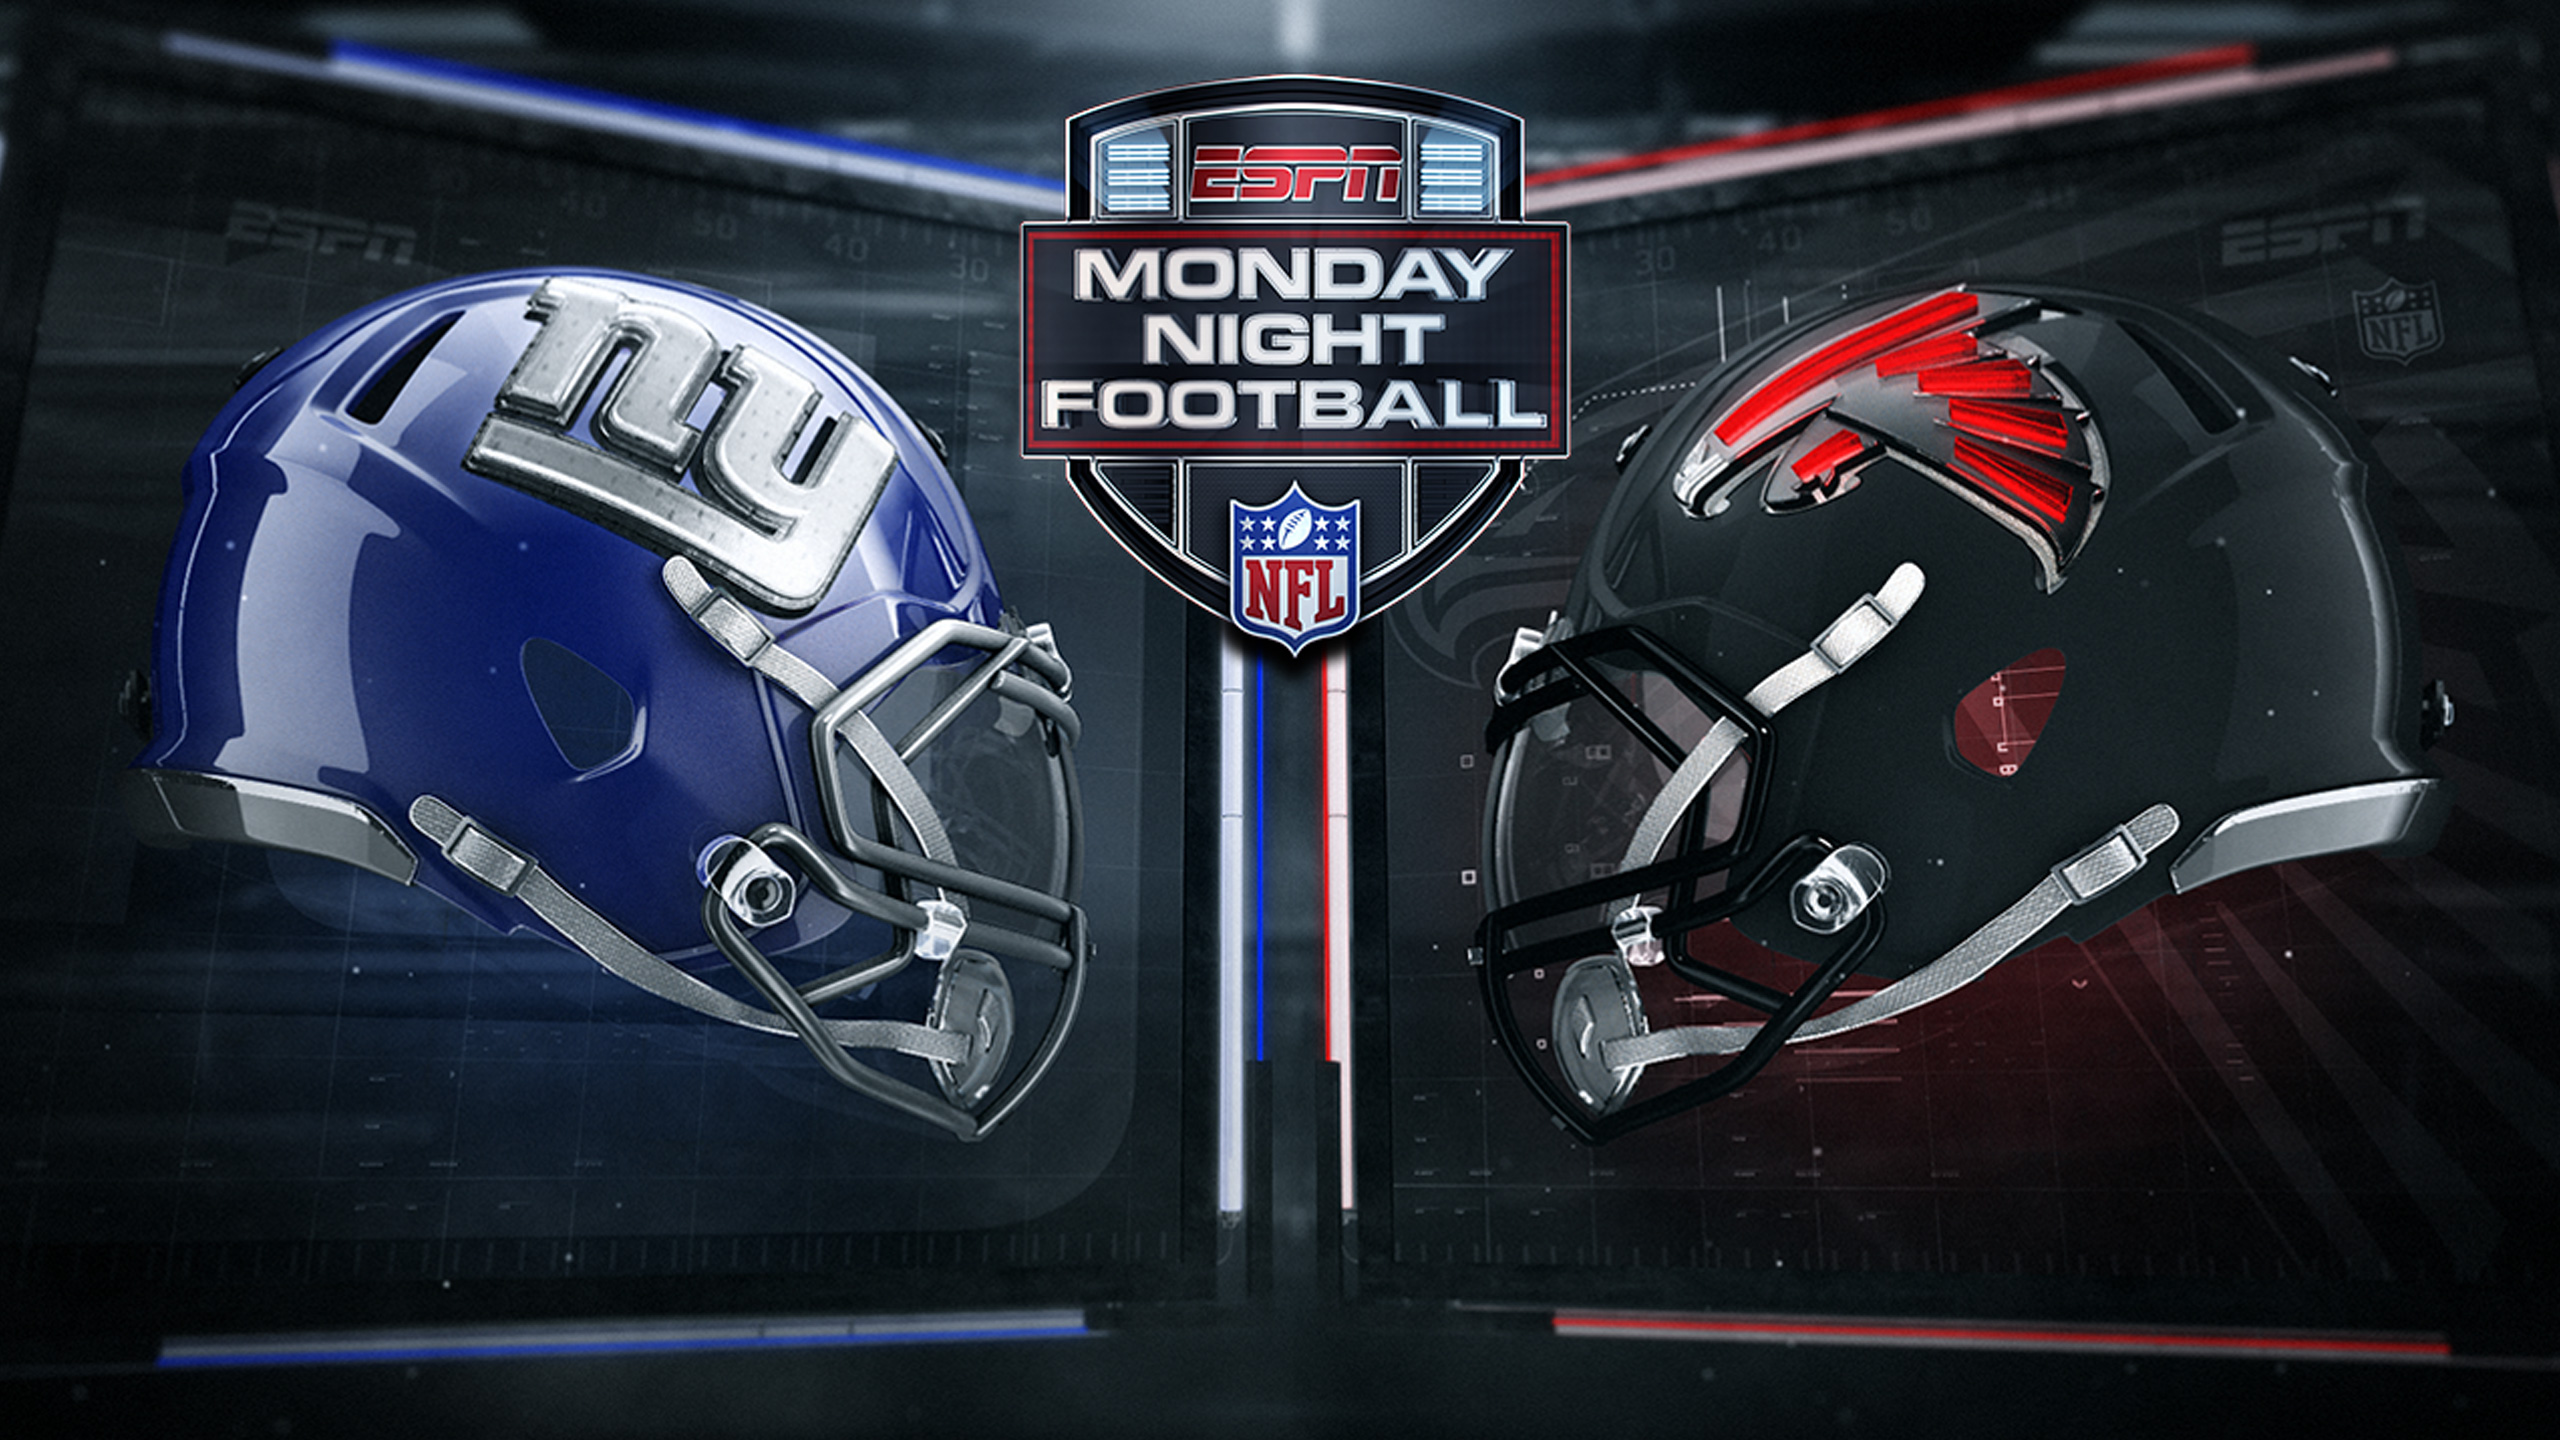 New York Giants vs. Atlanta Falcons